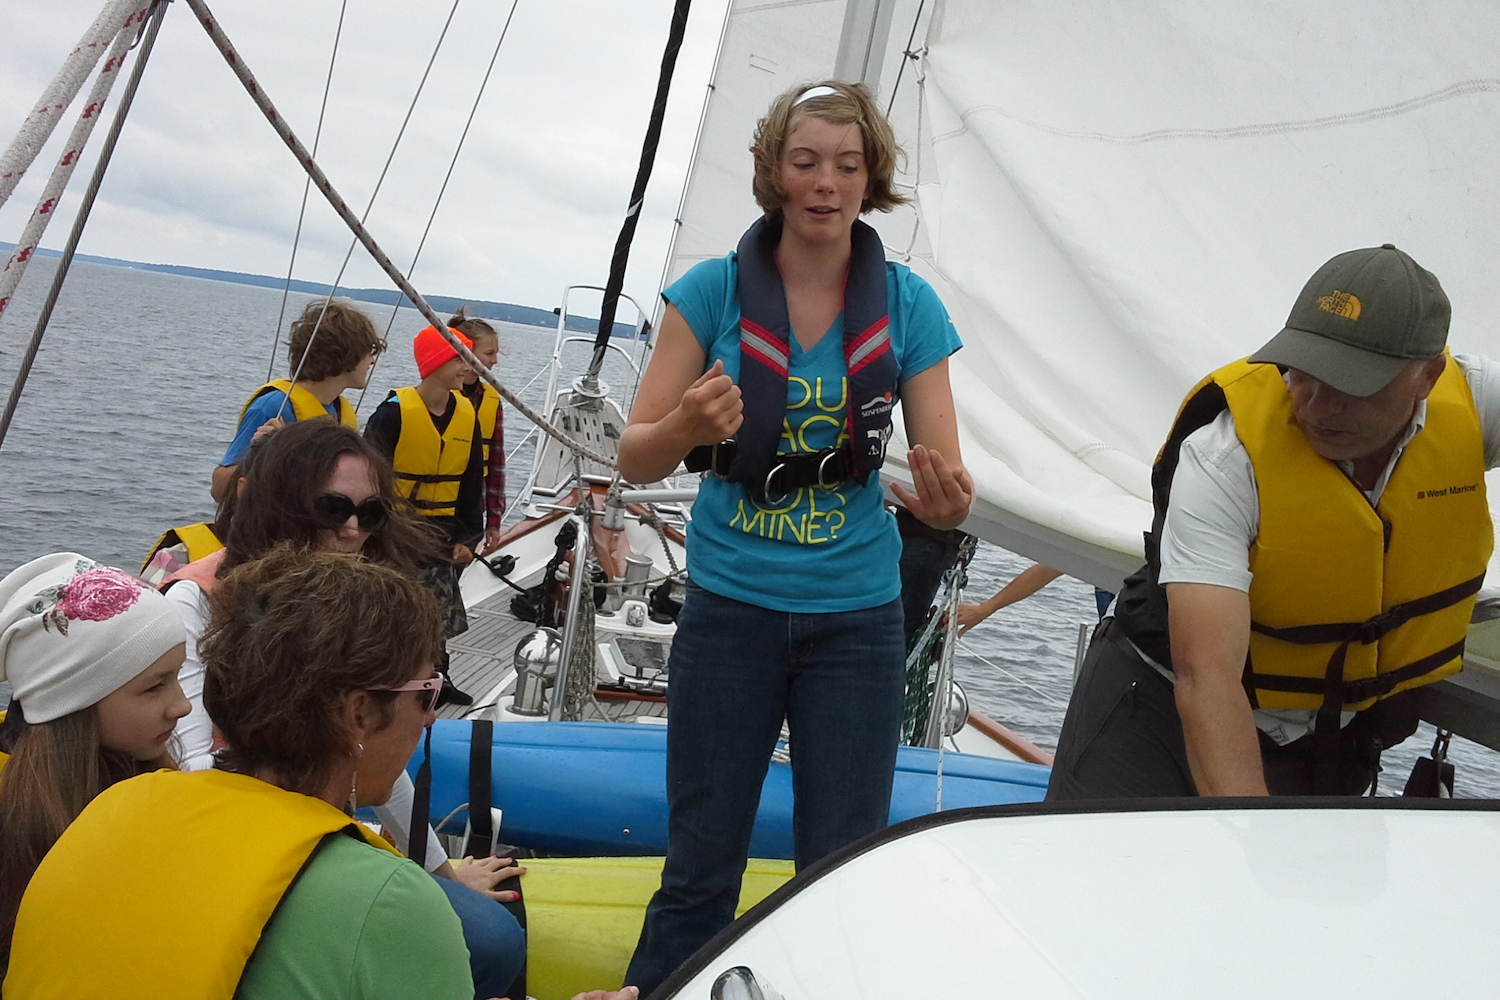 """Our Positive Impact - Since 2014 Lake Superior Tall Ships Inc. has been providing positive, life-changing outdoor sailing adventures to kids and adults in the Apostle Islands/Chequamegon Bay area aboard the Schooner Abbey Road.Our trips are """"Un-plugged"""" experiential learning voyages. Teamwork is required which fosters acceptance of others, cultivates personal responsibility and helps develop leadership skills. Longer trips can be physically and emotionally challenging for some participants—although not dangerous. As controlled risks are overcome by participants they discover hidden strengths, acquire new skills and increase self-confidence. We are very proud that we've had over 3,600 participants onboard the Abbey Road."""